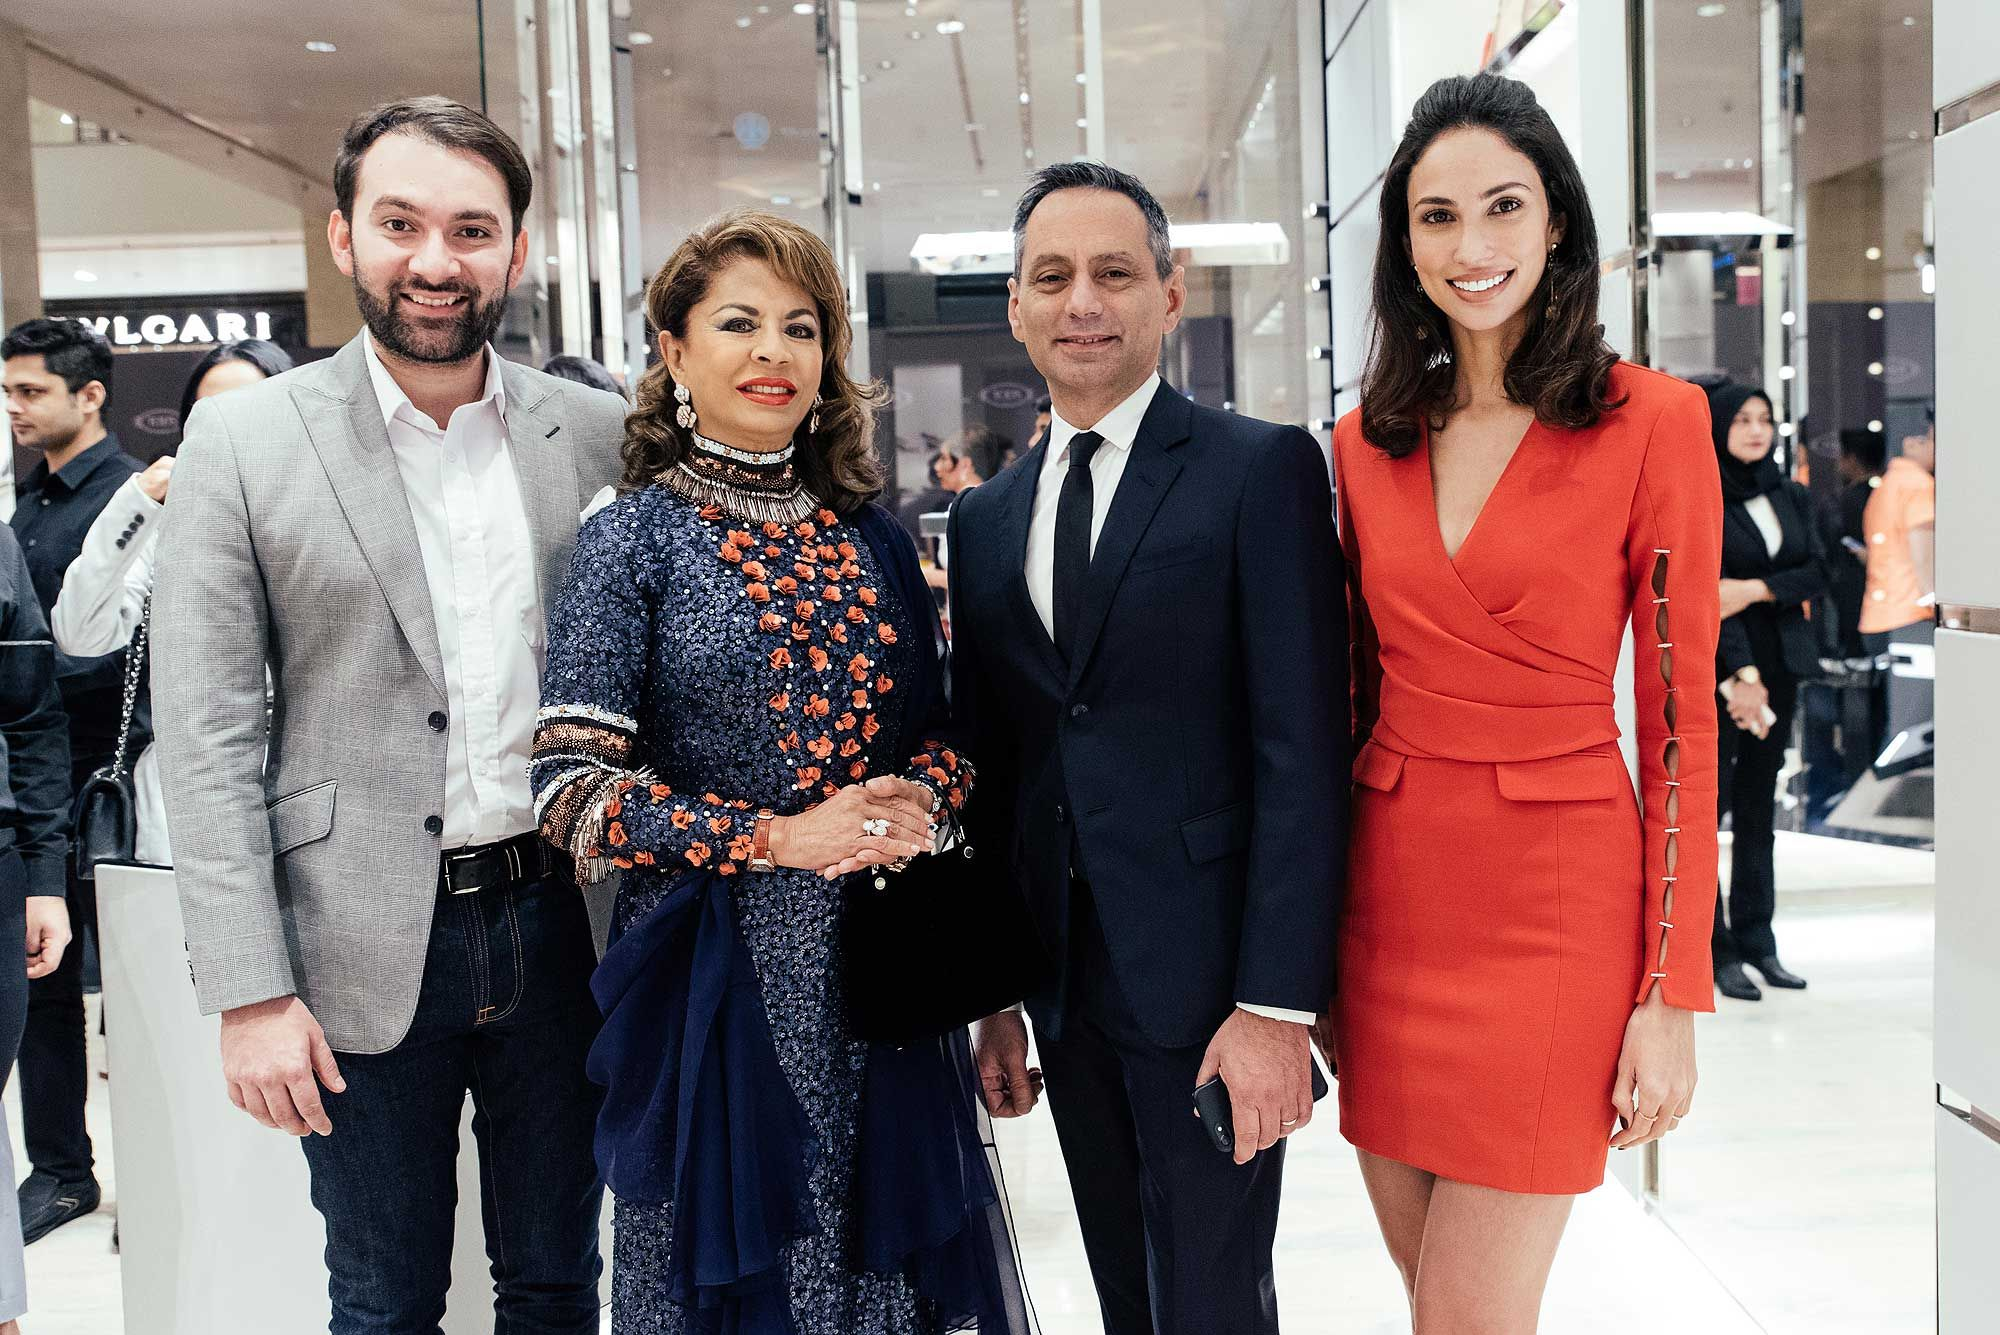 Dr Rajiv Bhanot, HRH Sultanah Kalsom of Pahang, Massimo Caltagirone and Deborah Henry